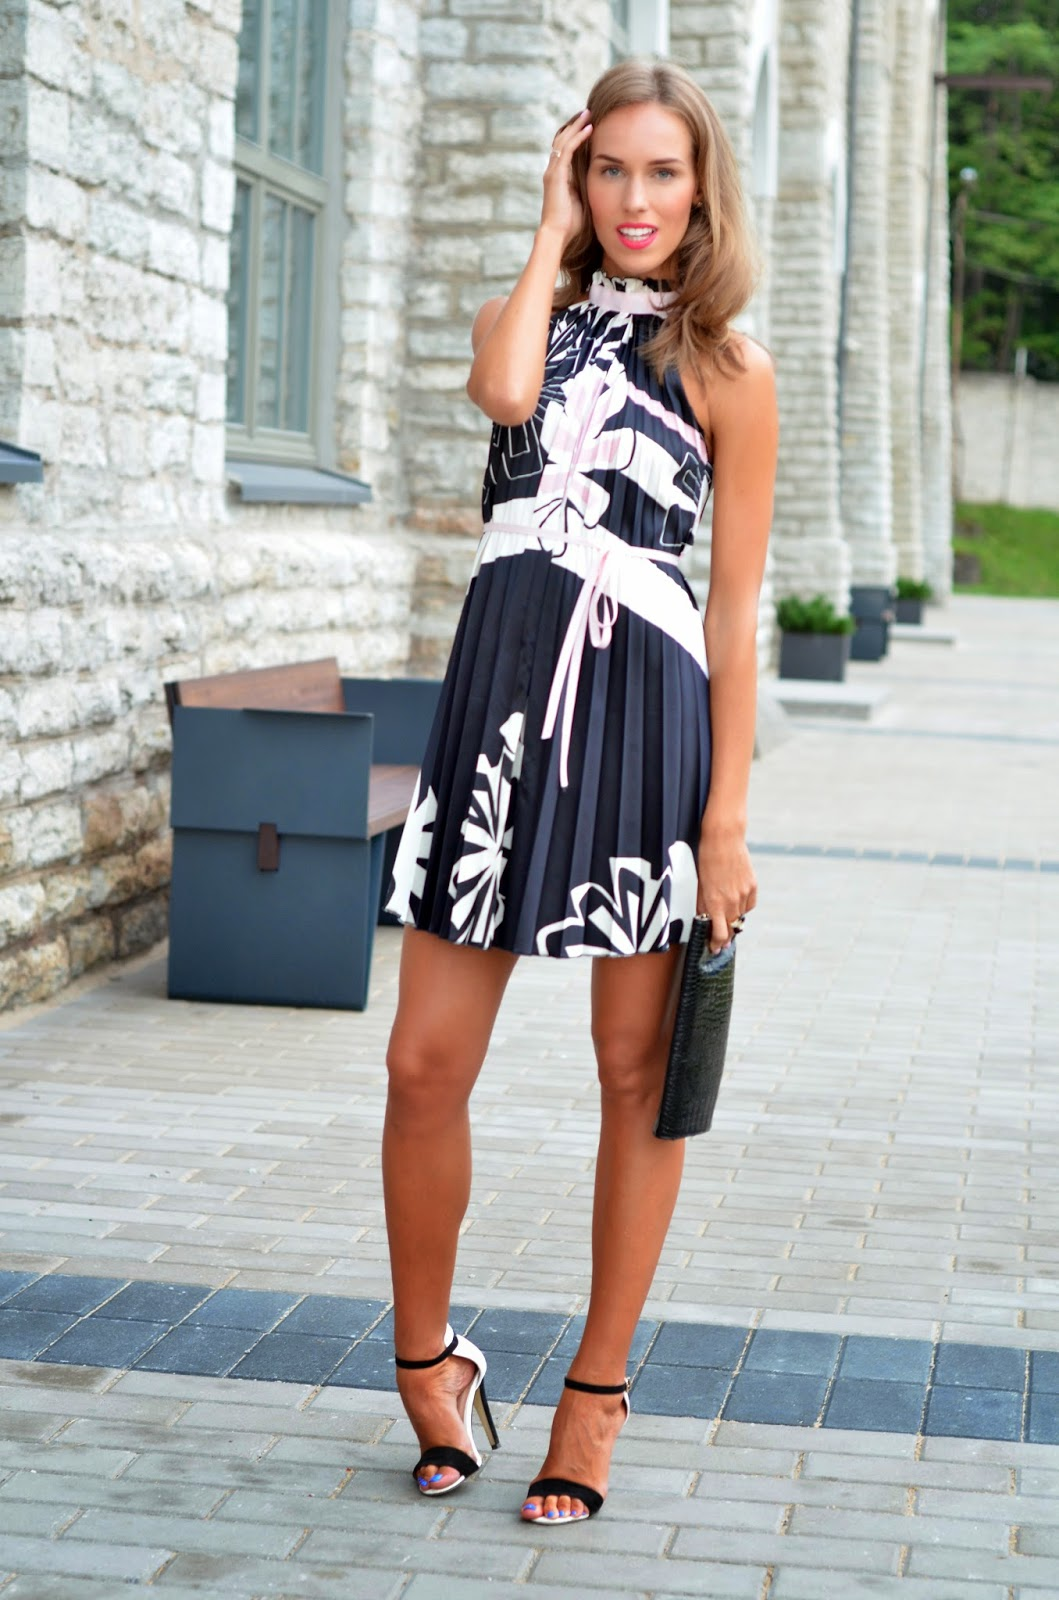 sasch pleated dress primark barely there heels seppälä clutch